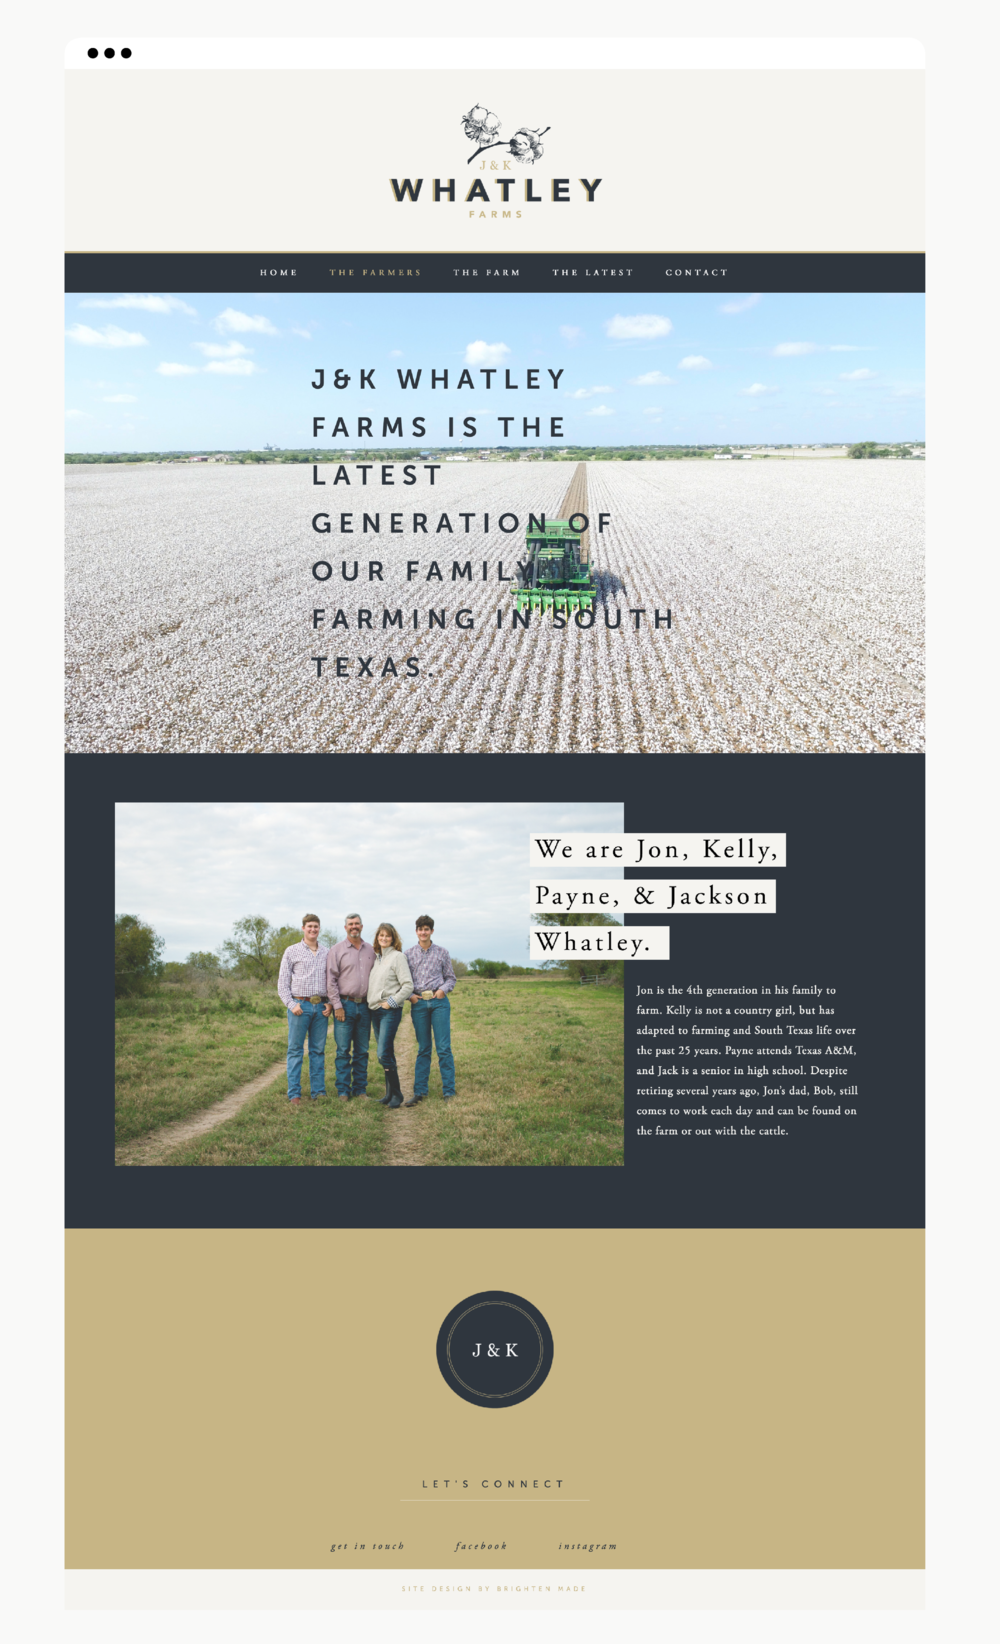 WhatleyFarms_Cotton_GraphicDesign_Website_DesMoines_Designer_WebDesign_Illustration_Modern_Natural2.png